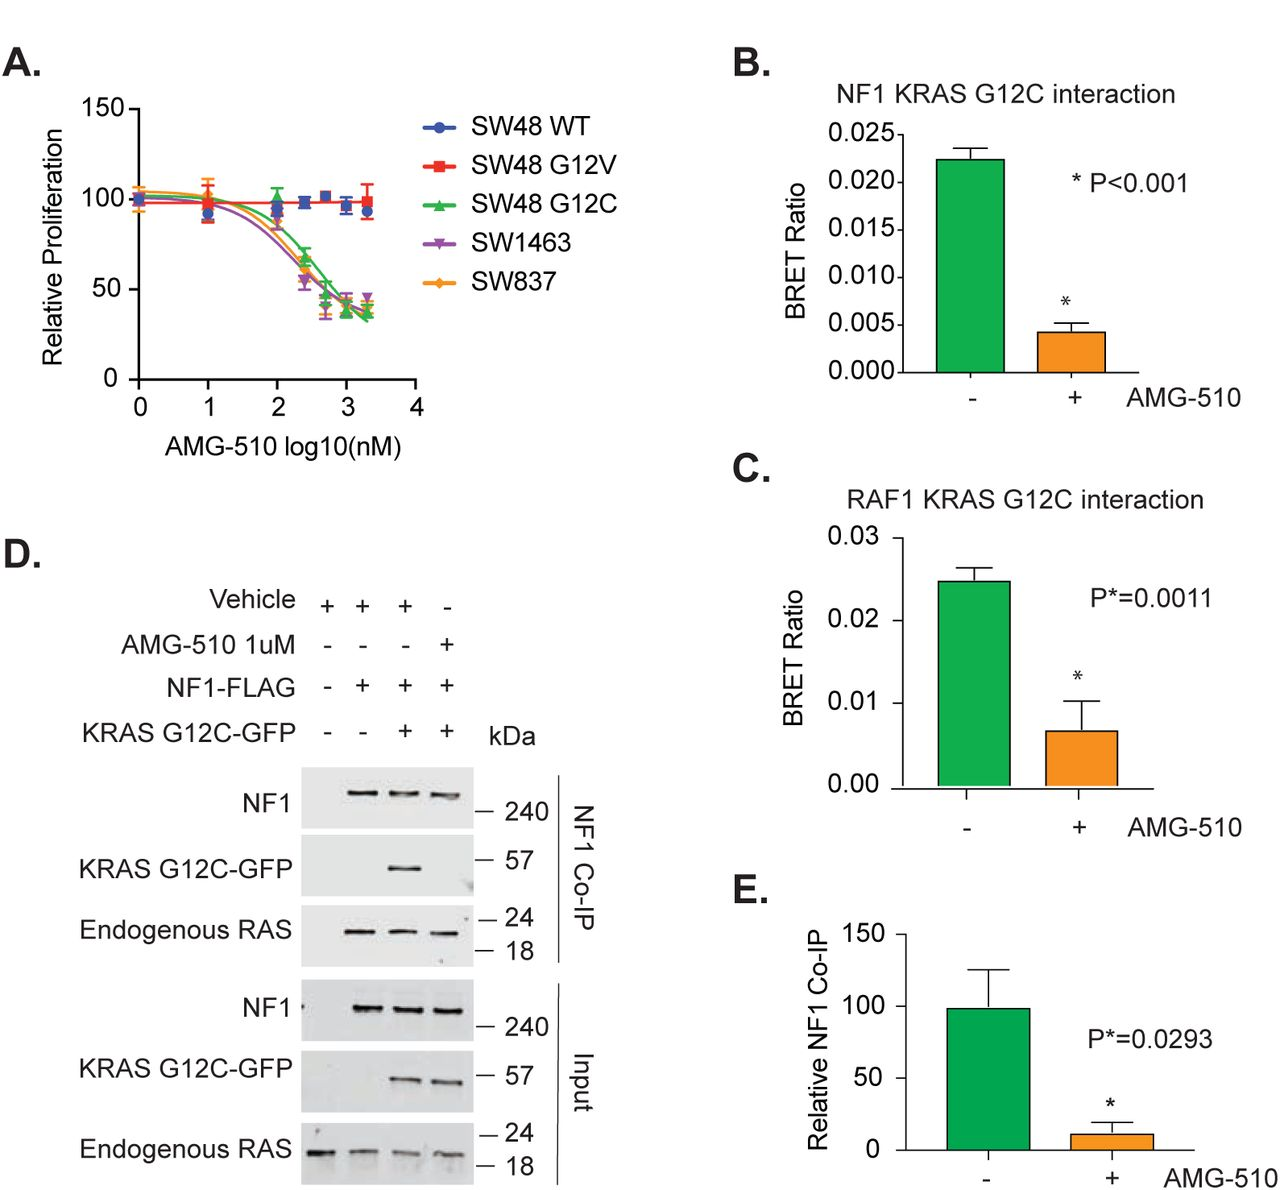 AMG-510 prevents KRAS-G12C from interacting with <t>NF1</t> and CRAF. ( A ) SW48 isogenic cell lines, SW837 and SW1463 were treated with increasing doses of AMG-510 for 48 hours and cell viability was measured with the MTT assay. Data points represent the mean of eight biological replicates. Results are representative of three separate experiments. ( B ) HEK293T cells were co-transfected with KRAS-GFP and <t>NF1-NanoLuc</t> with and without 500nM AMG-510 for 24 hours and signal is represented as a BRET ratio for both sample groups. Bars represent the mean of eight biological replicates. Results are representative of an individual experiment from three separate experiments. ( C ) HEK293T cells were co-transfected with KRAS-GFP and CRAF-NanoLuc with and without 500nM AMG-510 for 24 hours and signal is represented as a BRET ratio for both sample groups. Bars represent the mean of eight biological replicates. Results are representative of an individual experiment from three separate experiments. ( D ). HEK293T cells were transfected with either KRAS-G12C-GFP and NF1, NF1 alone, or mock transfection. Cells were then treated with either vehicle or 500 nM AMG-510 for 24 hours. Results are representative of an individual experiment from three separate experiments. ( E ) Mean KRAS G12C pull-down for the three independent NF1-coIP experiments. Statistical analysis was performed with unpaired t-test and P-values are indicated. Error bars in all panels represent standard deviation.